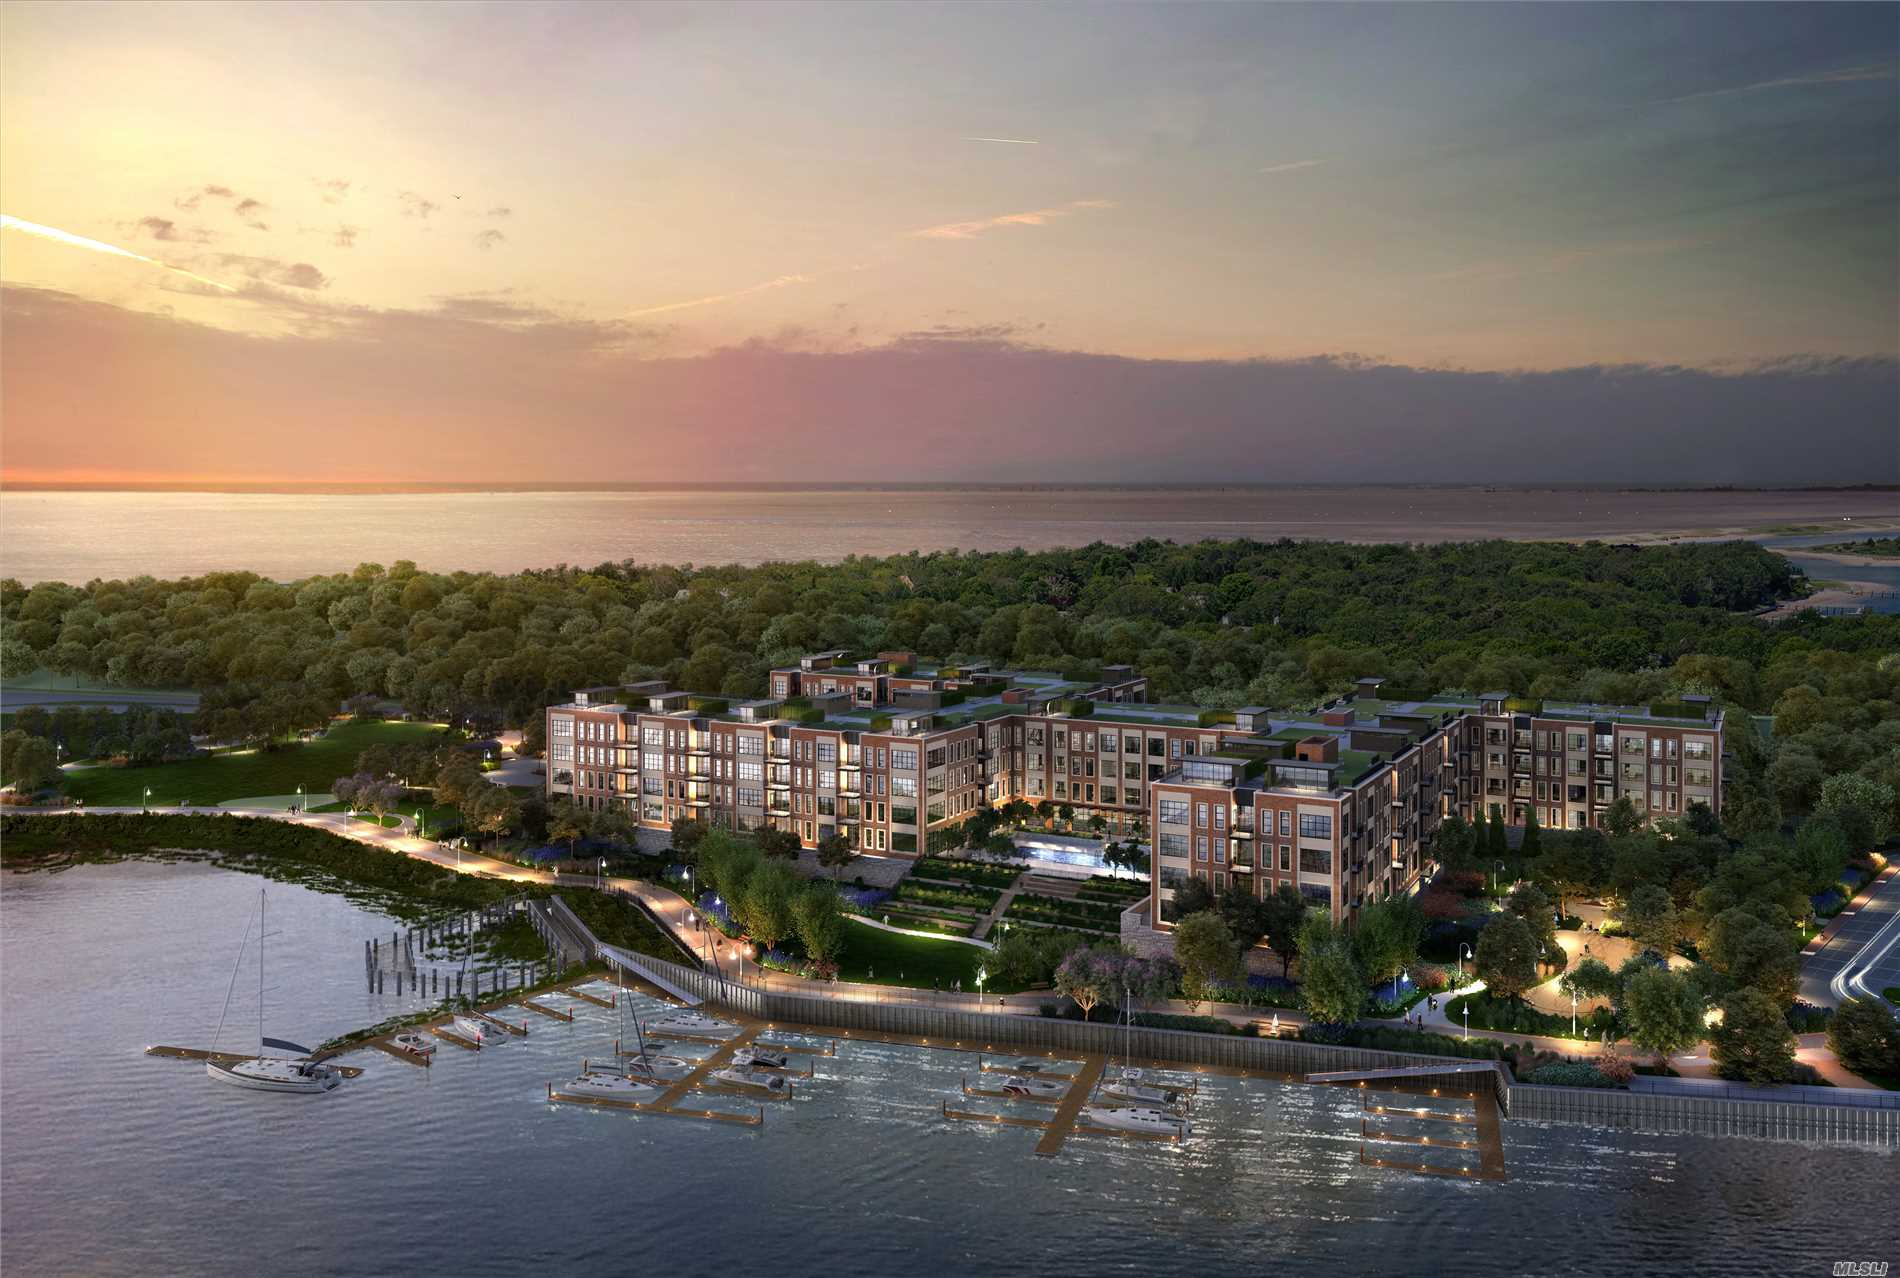 Property for sale at 100 Garvies Point Road # 1305, Glen Cove NY 11542, Glen Cove,  New York 11542